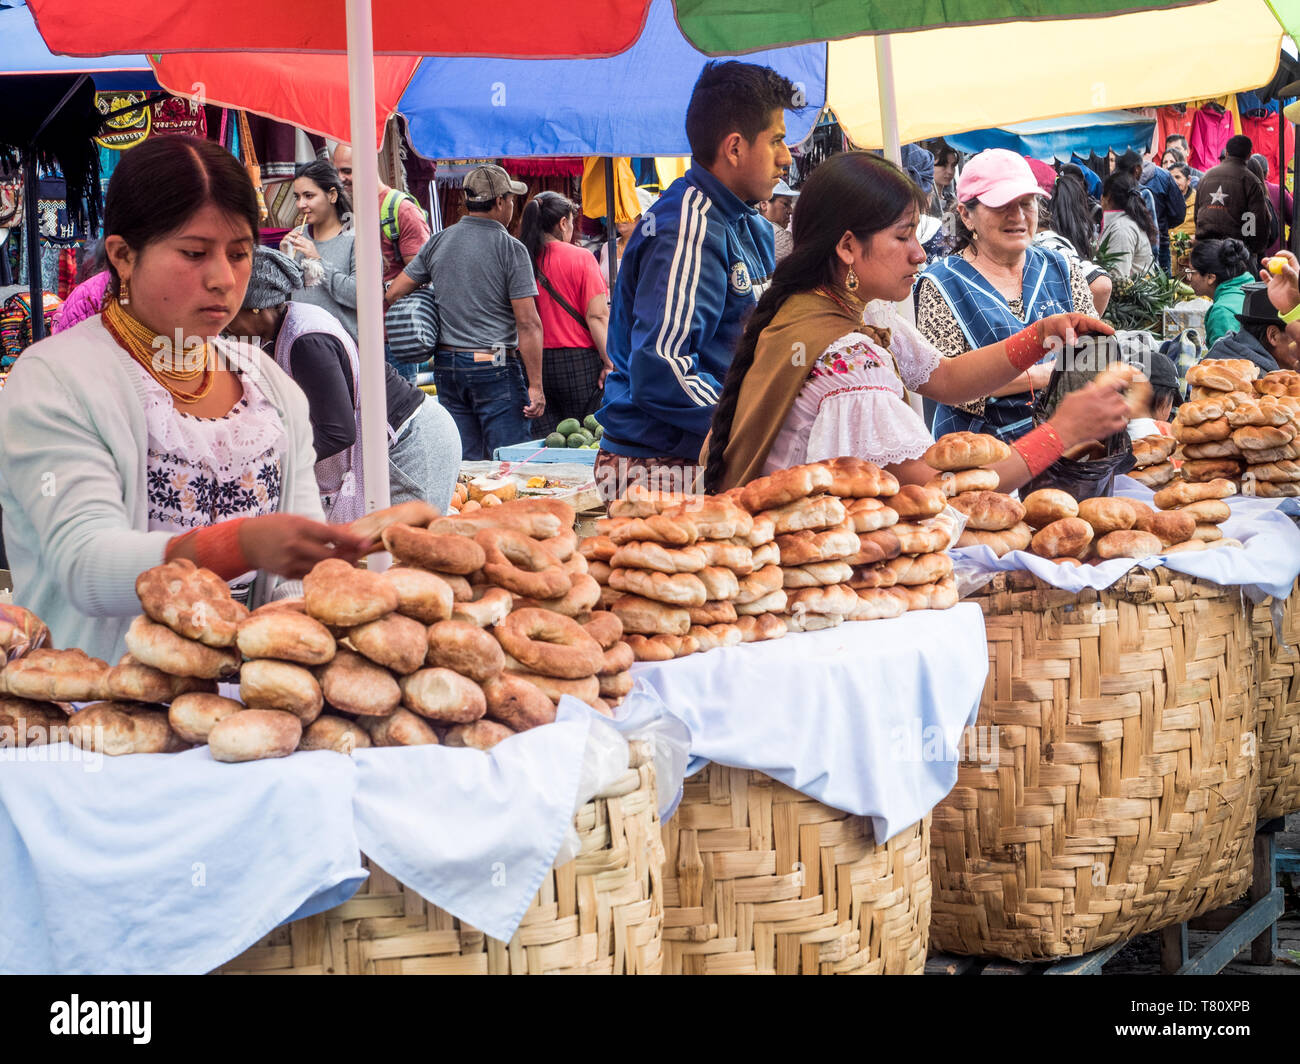 Bread for sale, market, Plaza de los Ponchos, Otavalo, Ecuador, South America - Stock Image